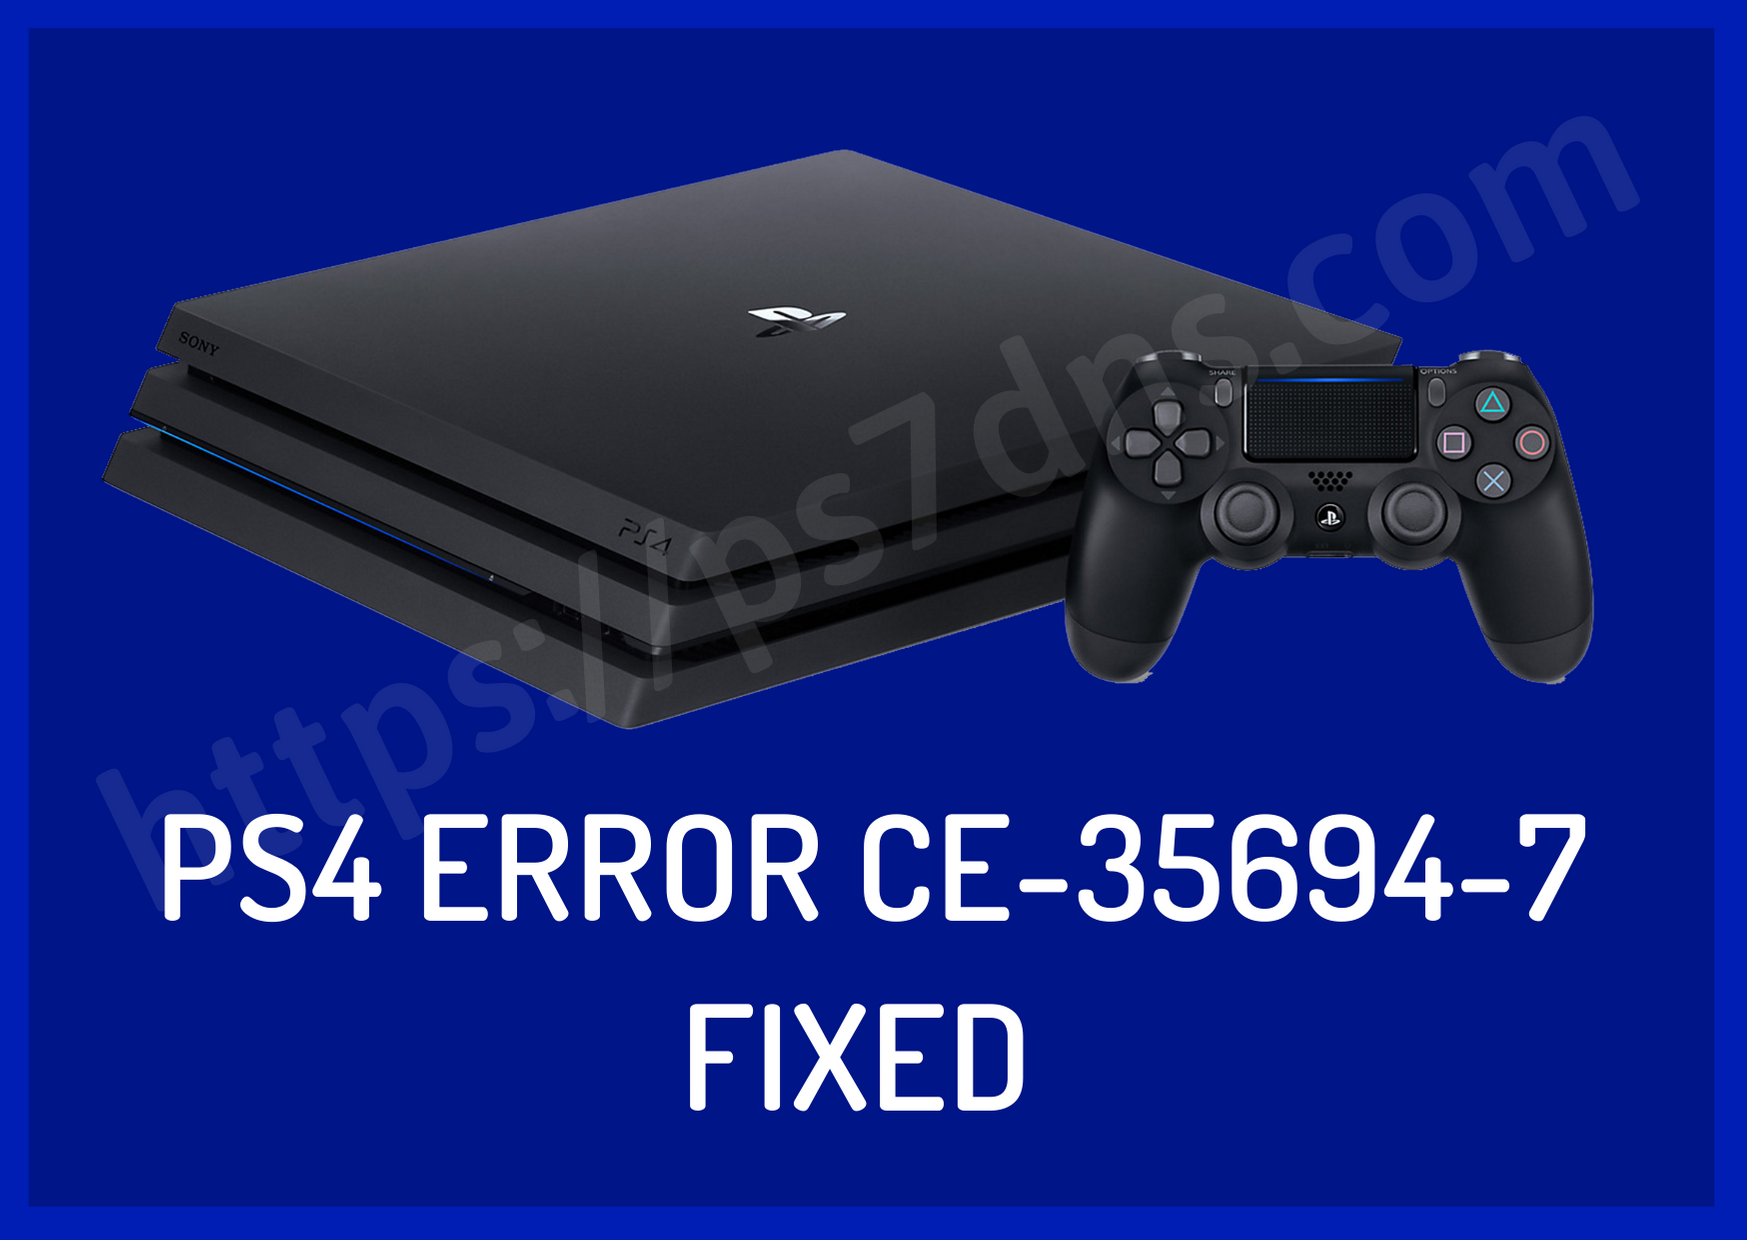 PS4 Error CE-35694-7 Fixed - Best Solution